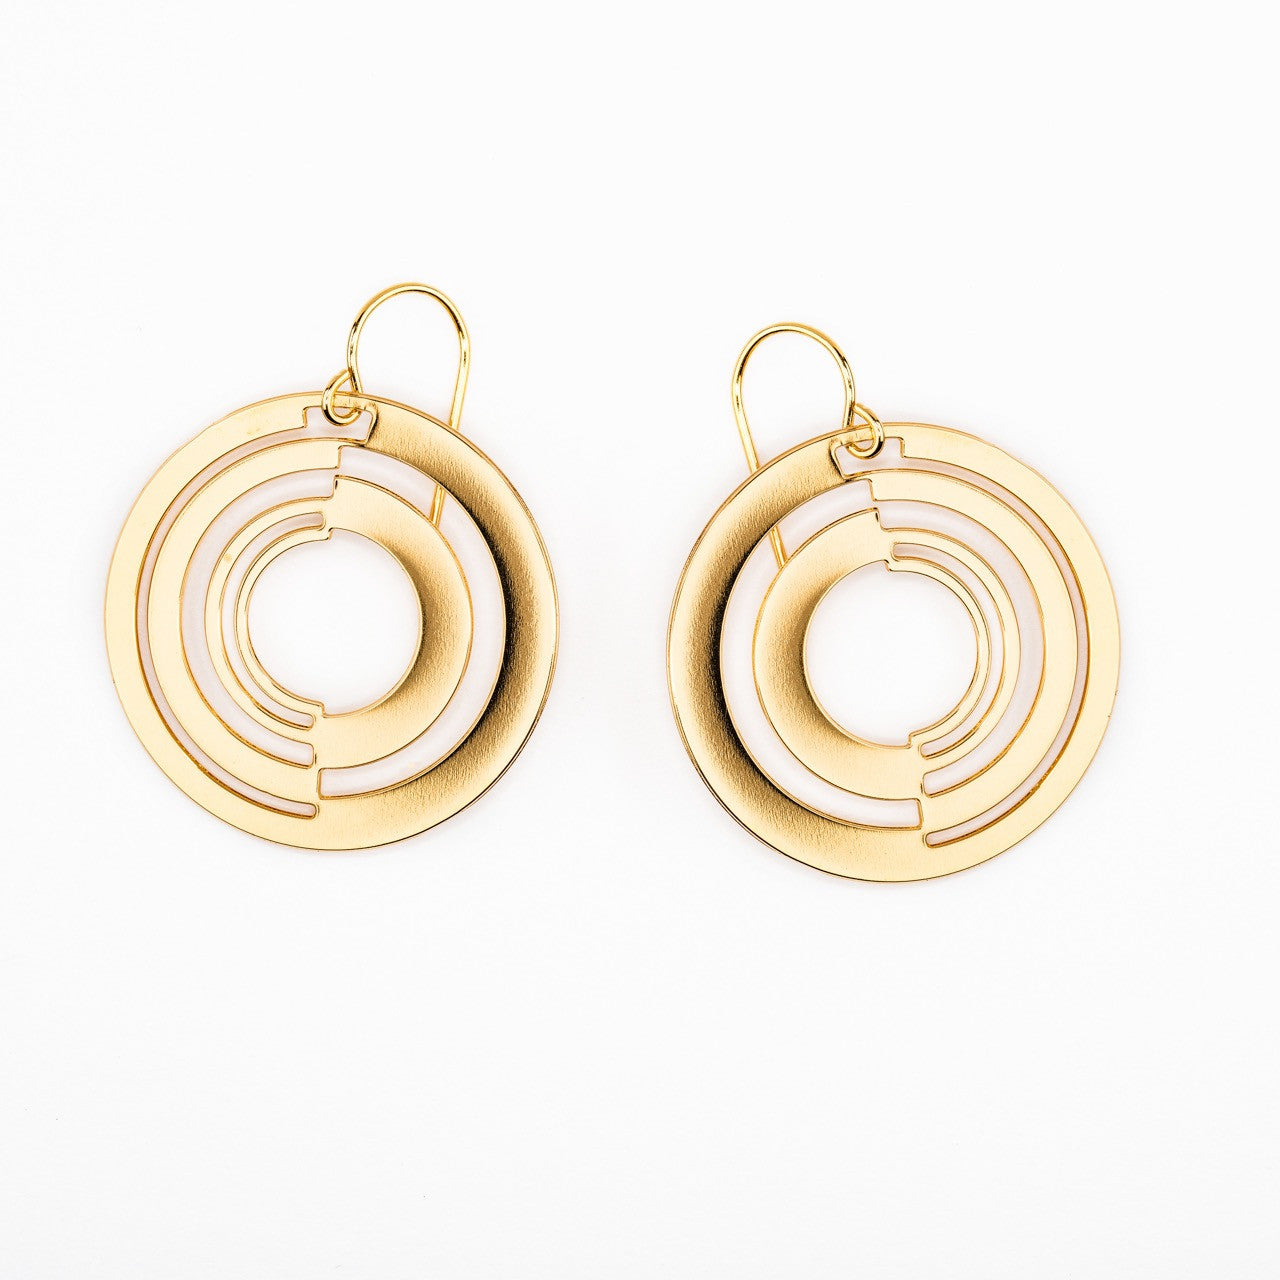 #9 earrings gold